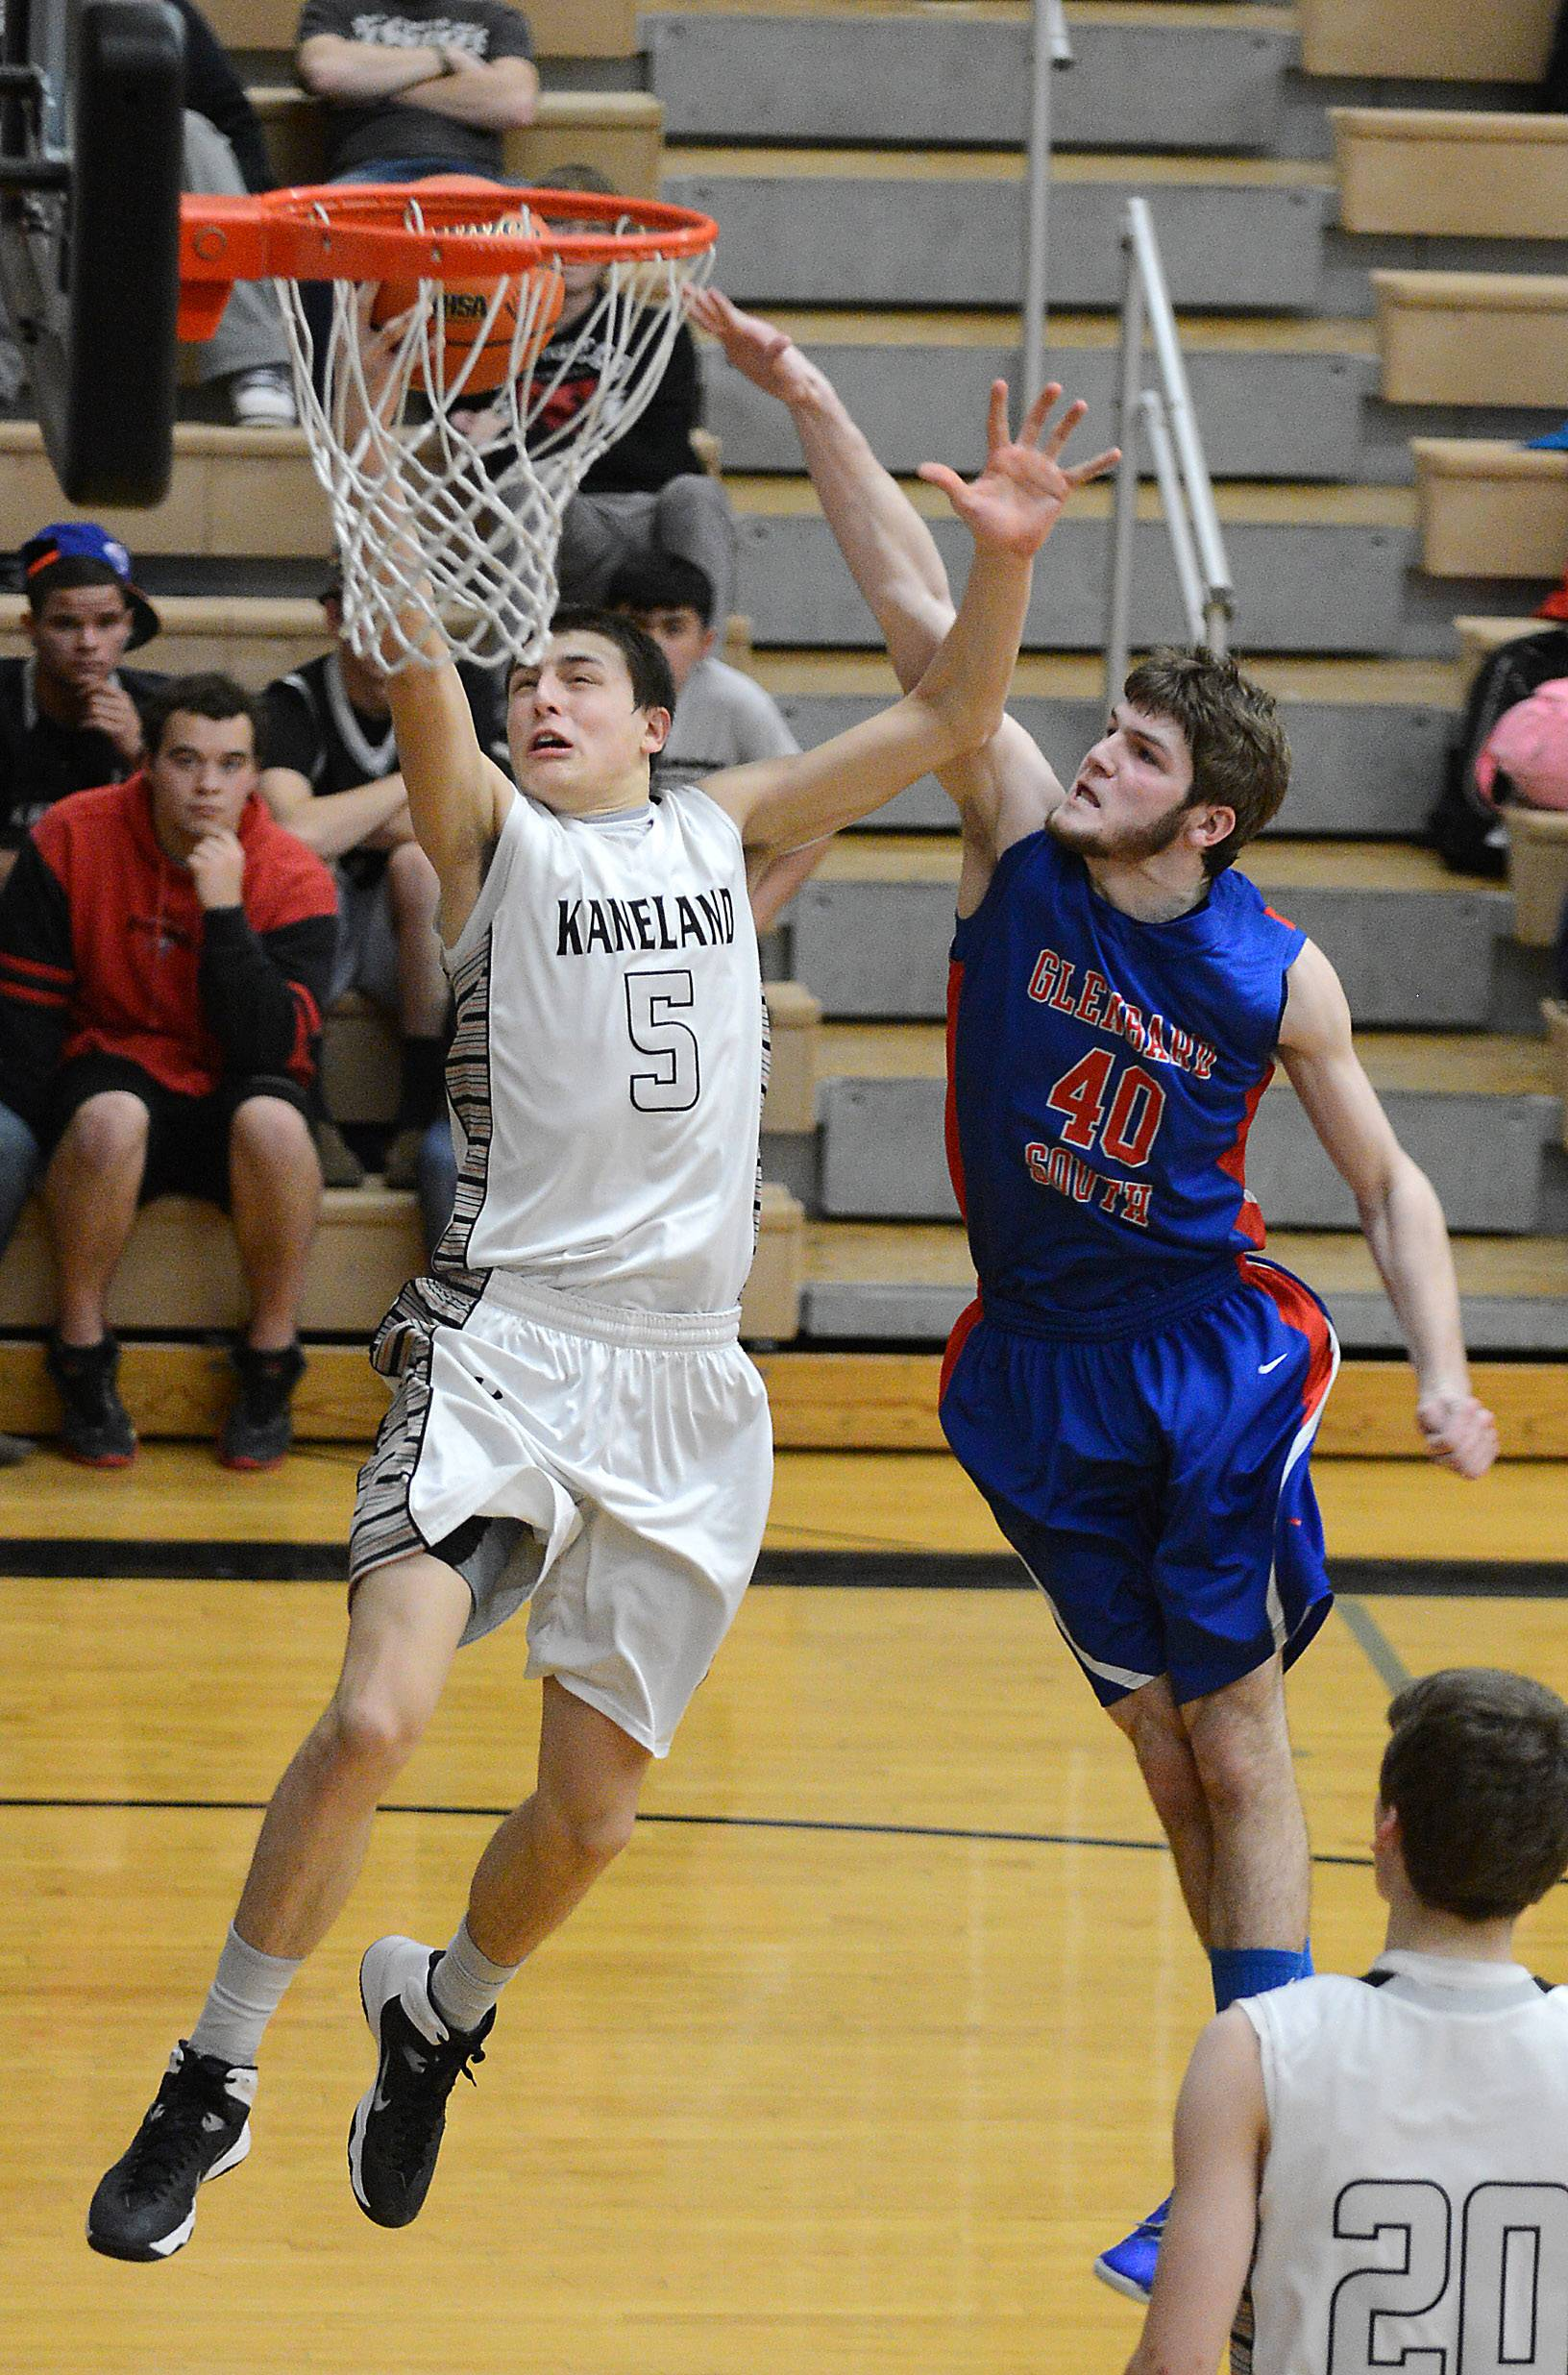 Kaneland's John Pruett (5) scores on a breakaway while fending off Glenbard South's John Marks (40) during Tuesday's regional action in Kaneland.